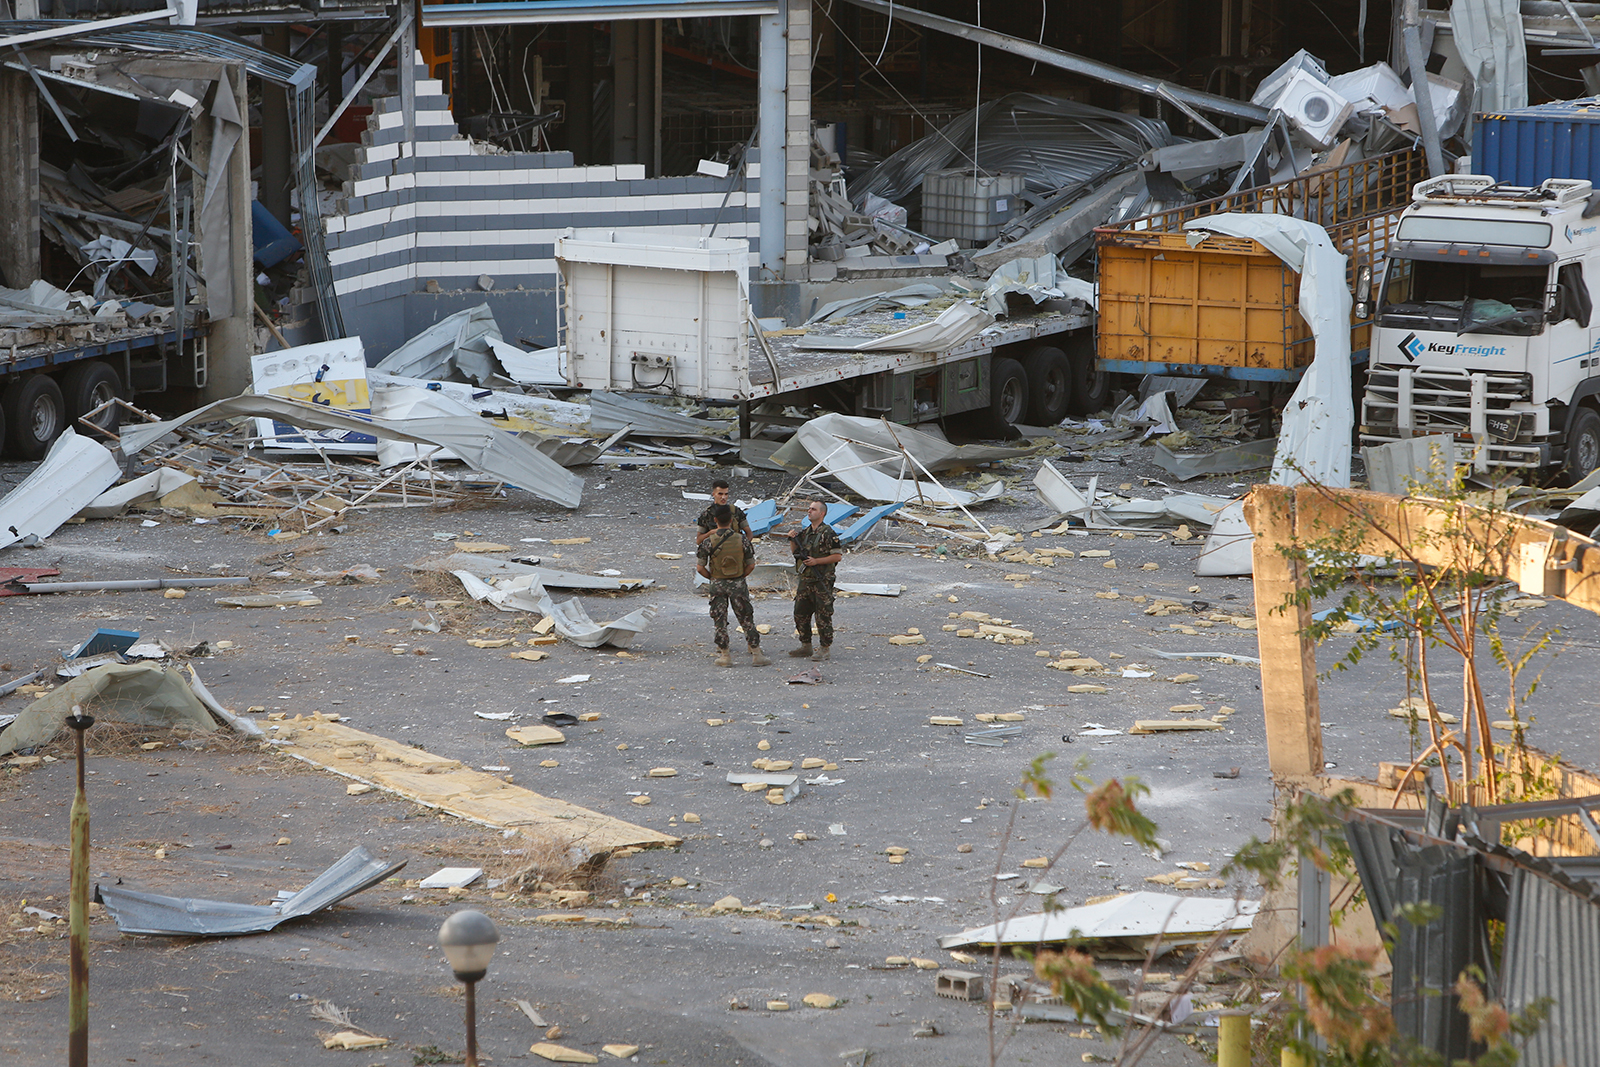 Military personnel stand amid debris on August 5, in Beirut, Lebanon.